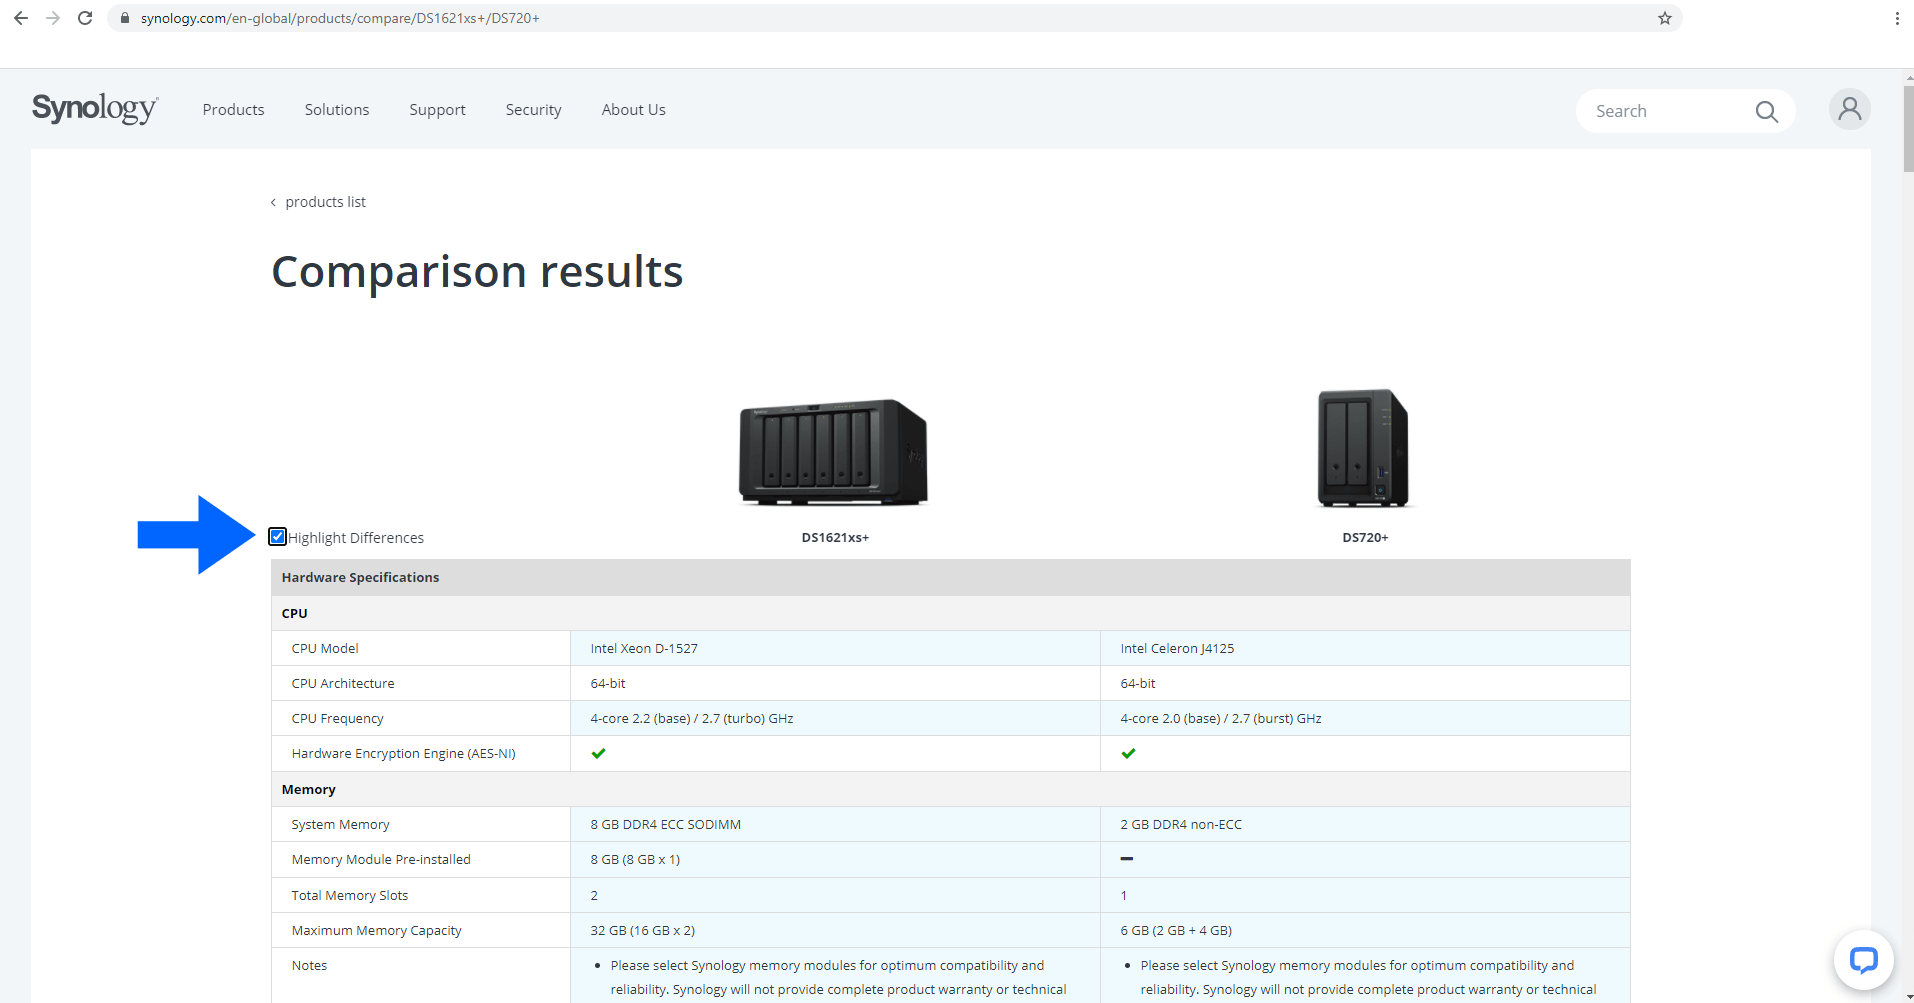 2 Compare Synology NAS products